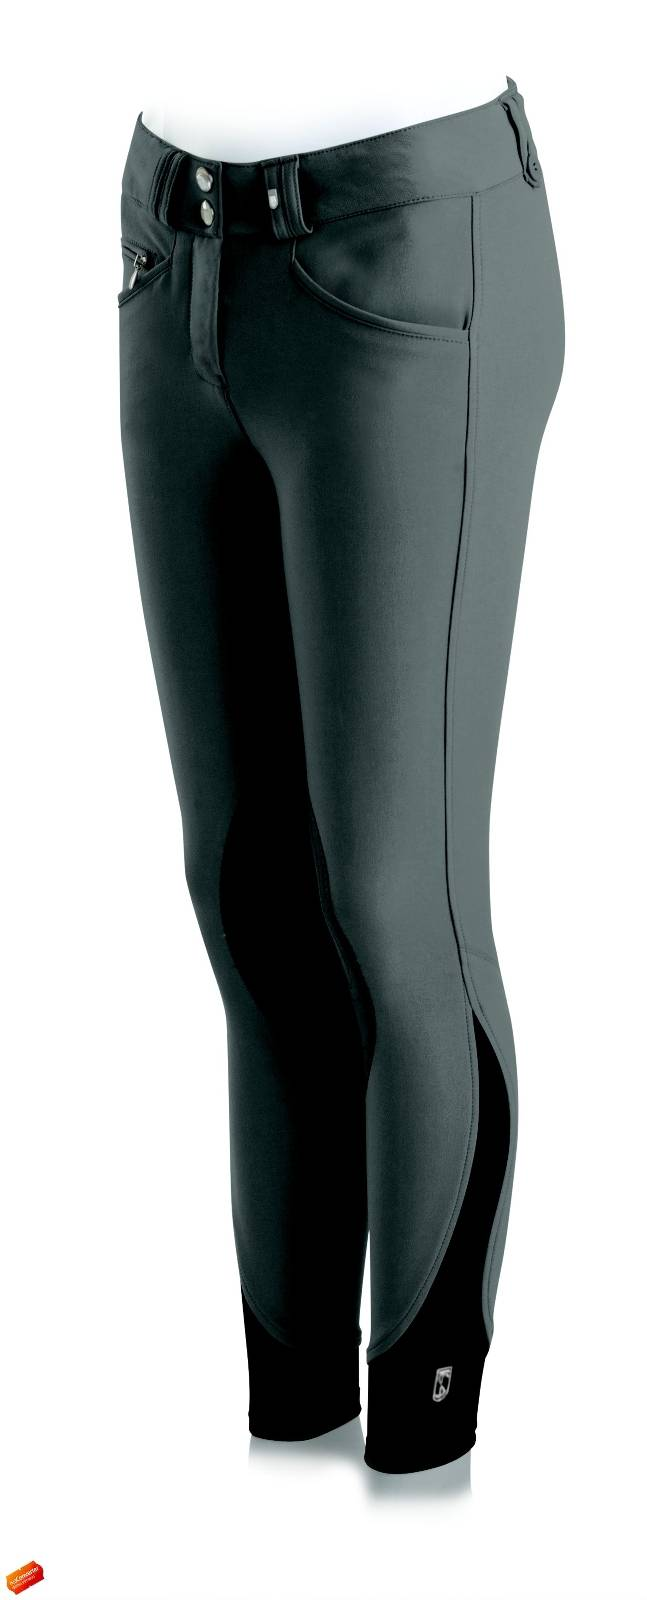 Tredstep Argenta Breeches - Ladies, Knee Patch